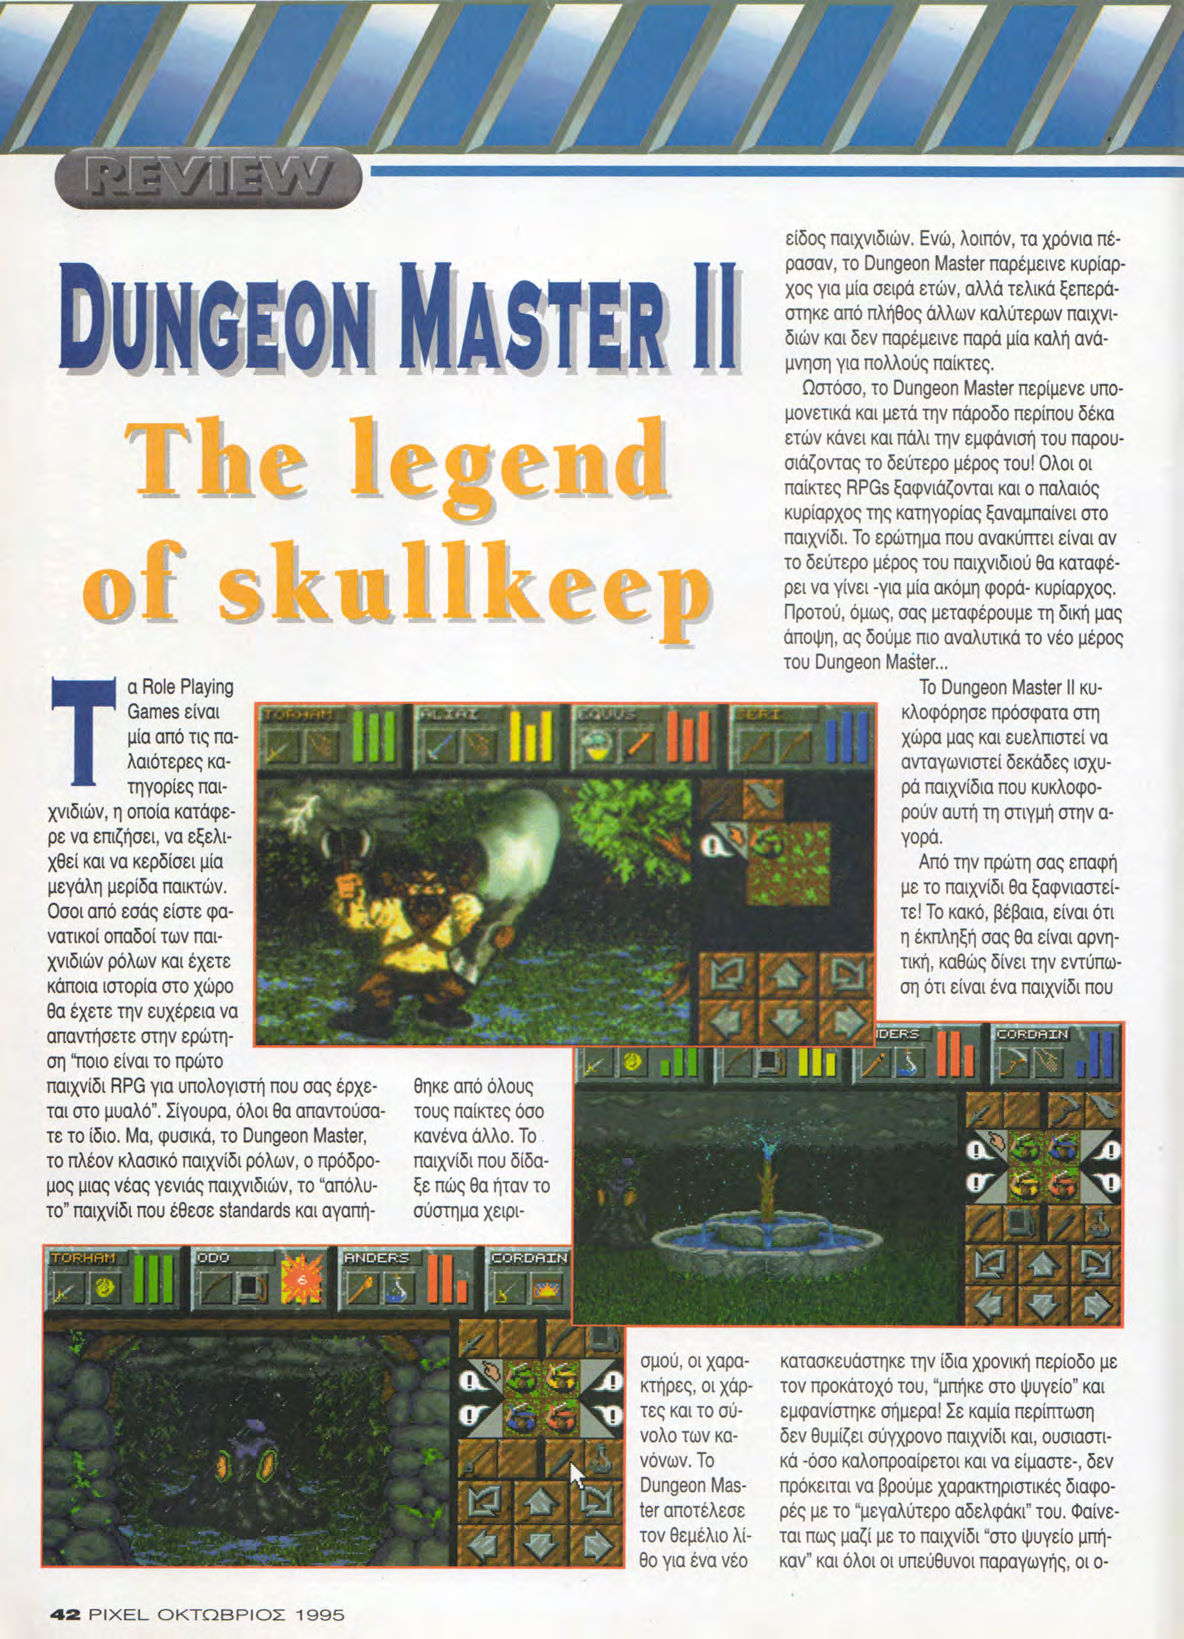 Dungeon Master II for PC Review published in Greek magazine 'Pixel', Issue #125 October 1995, Page 42